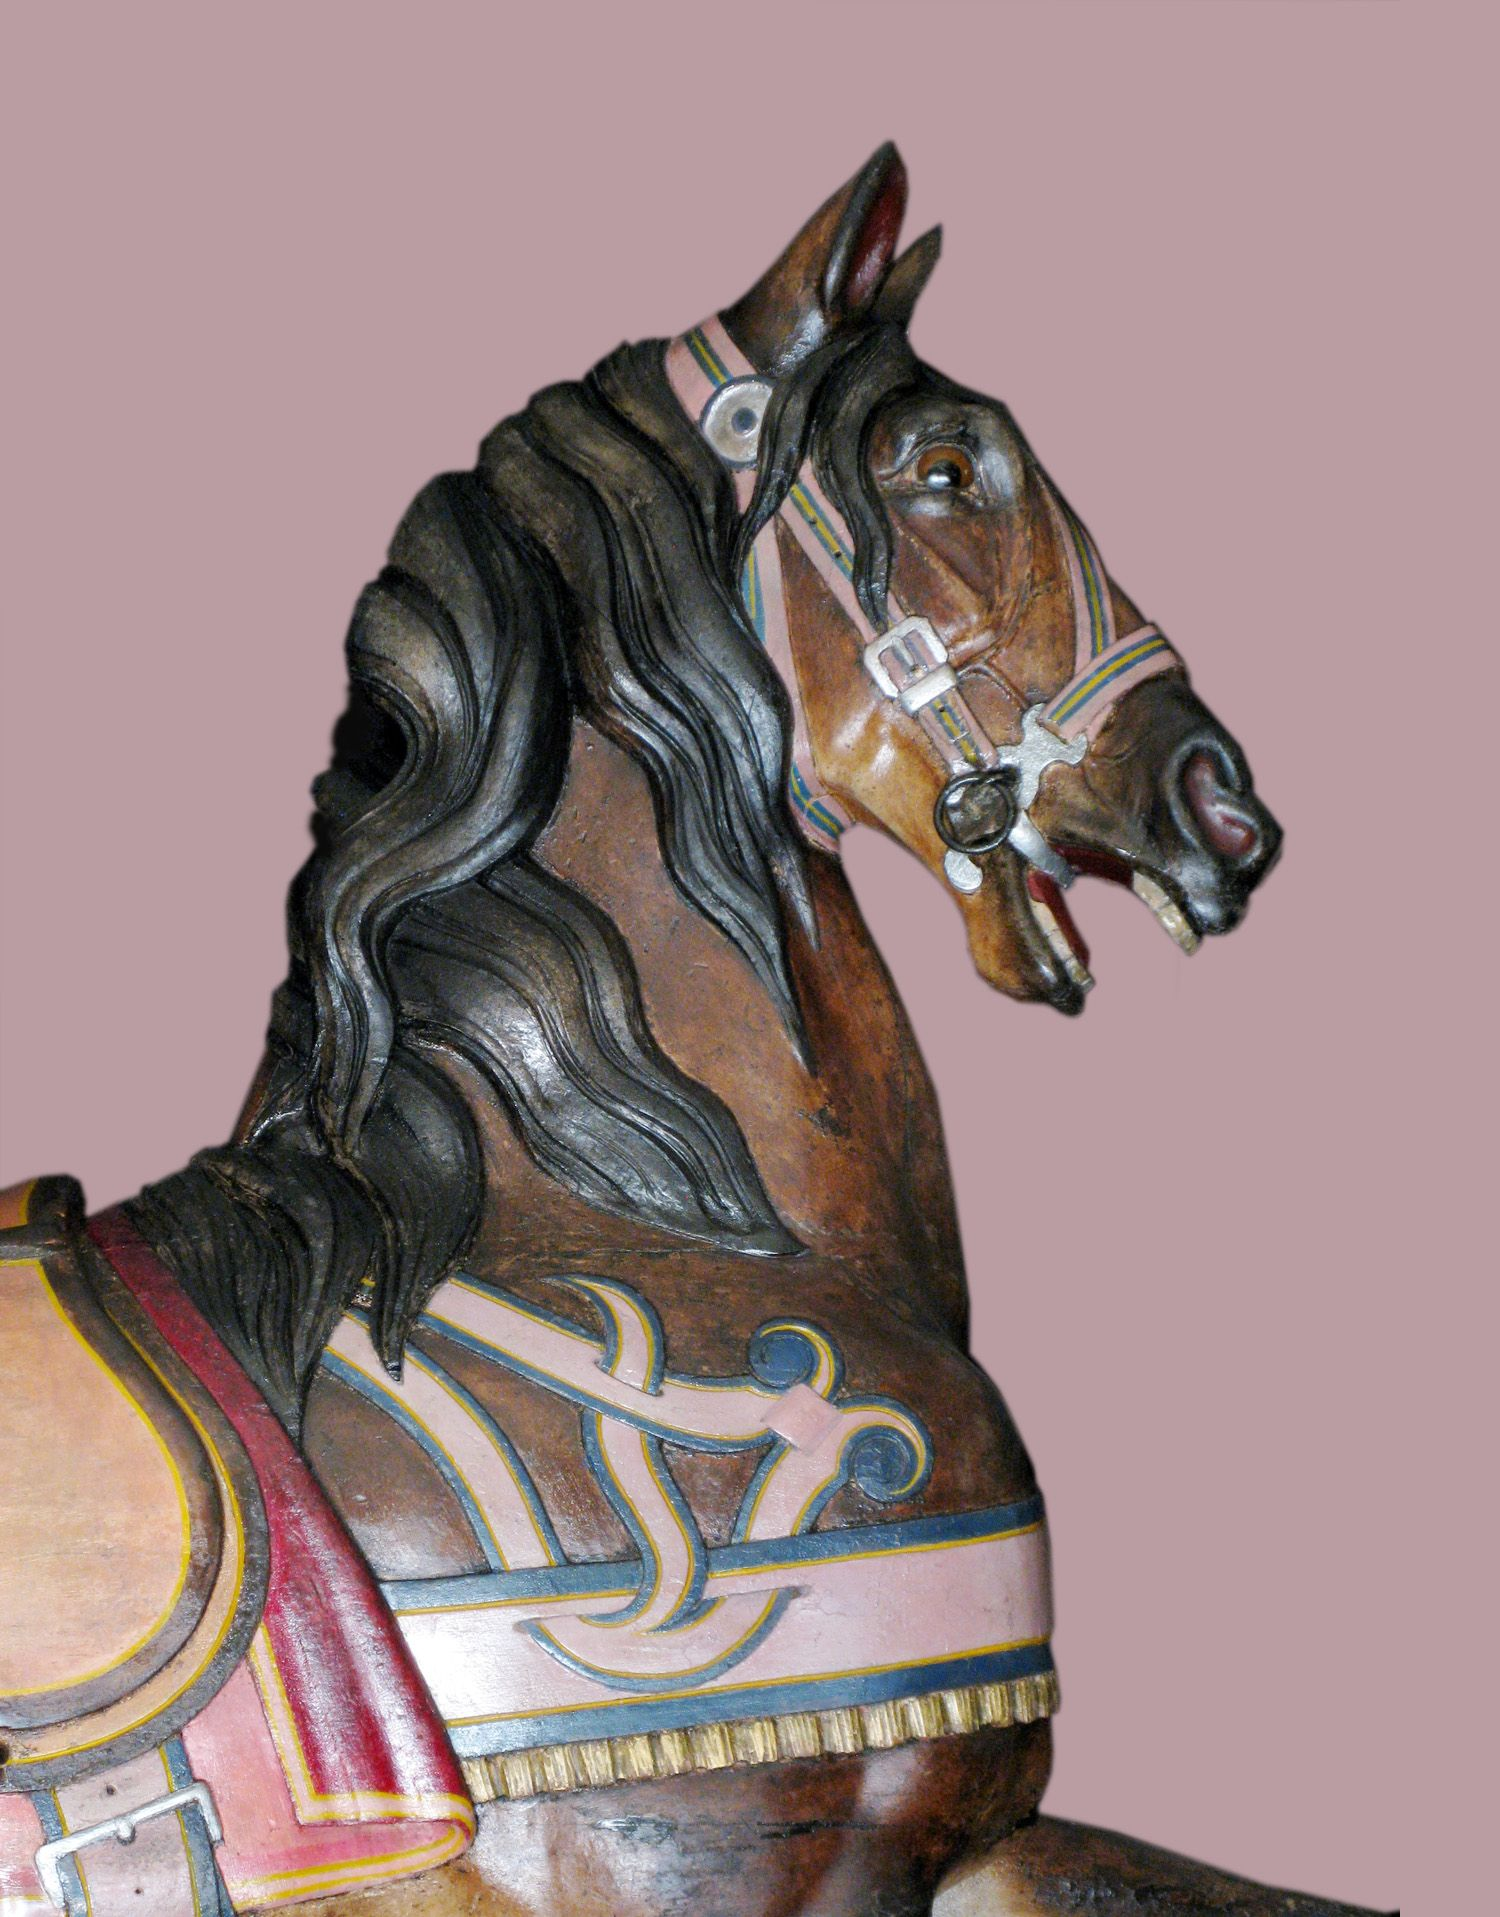 Ca 1900 Dentzel thoroughbred bust